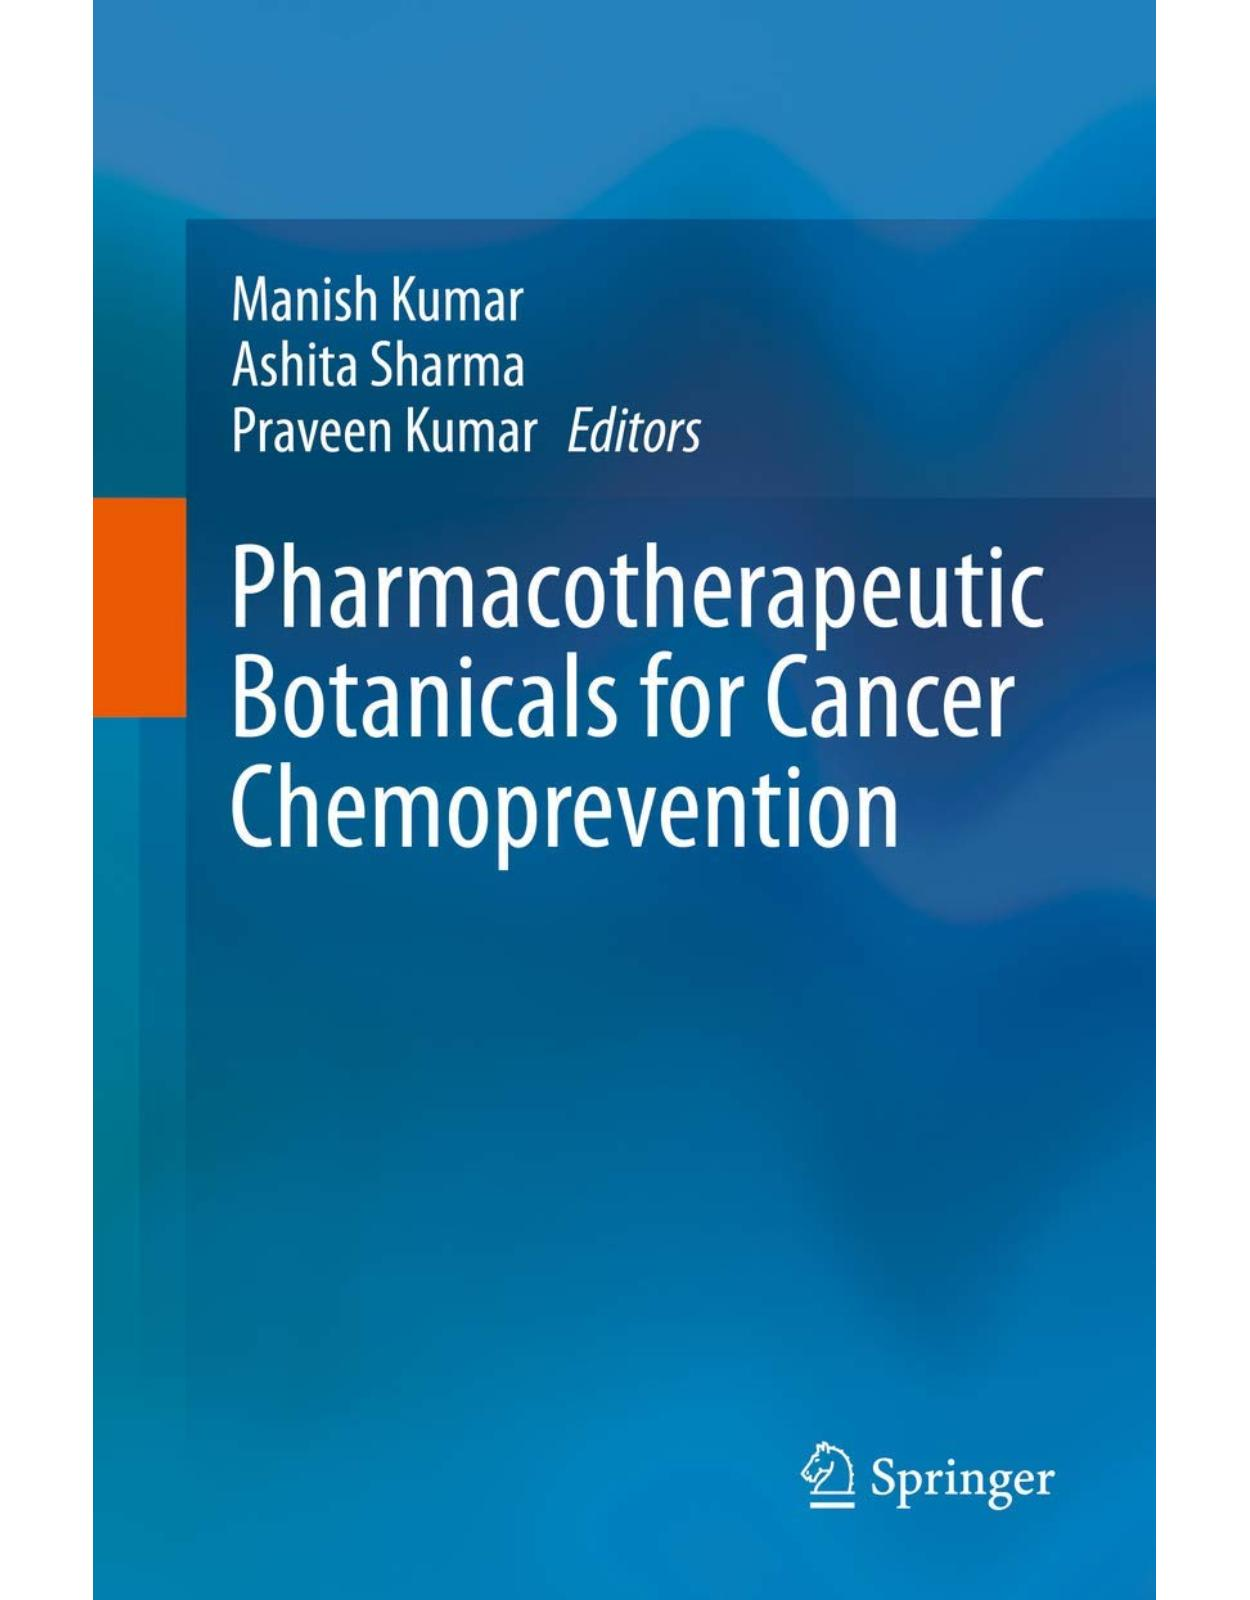 Pharmacotherapeutic Botanicals for Cancer Chemoprevention